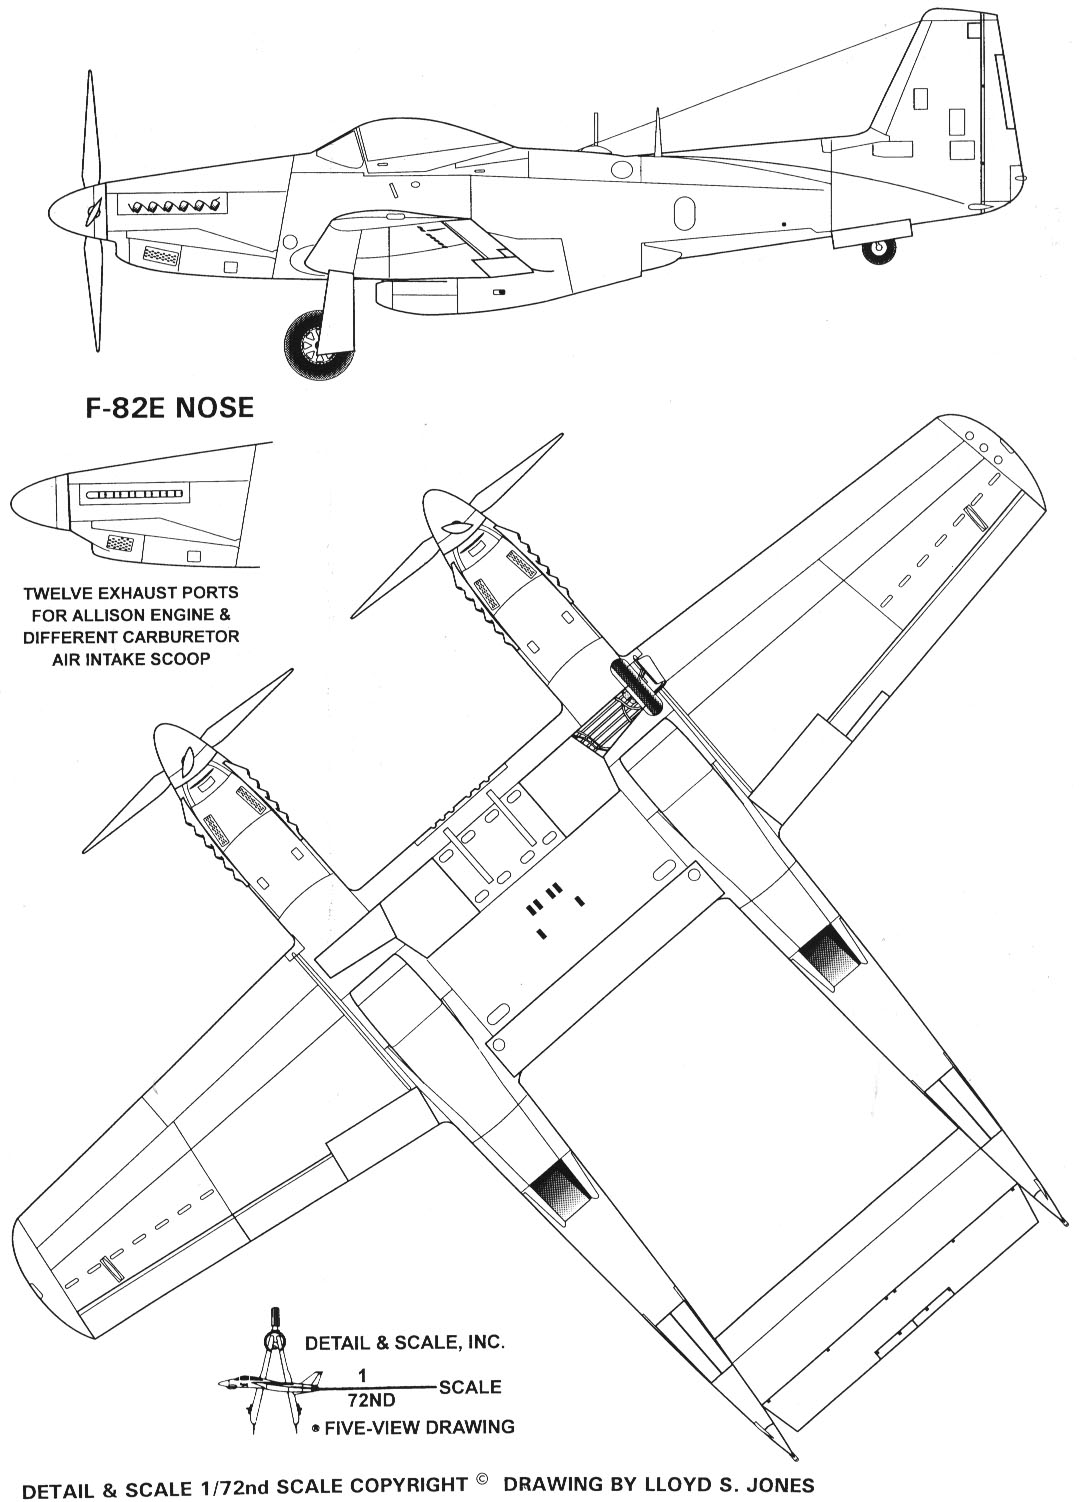 F-82 Twin Mustang blueprint